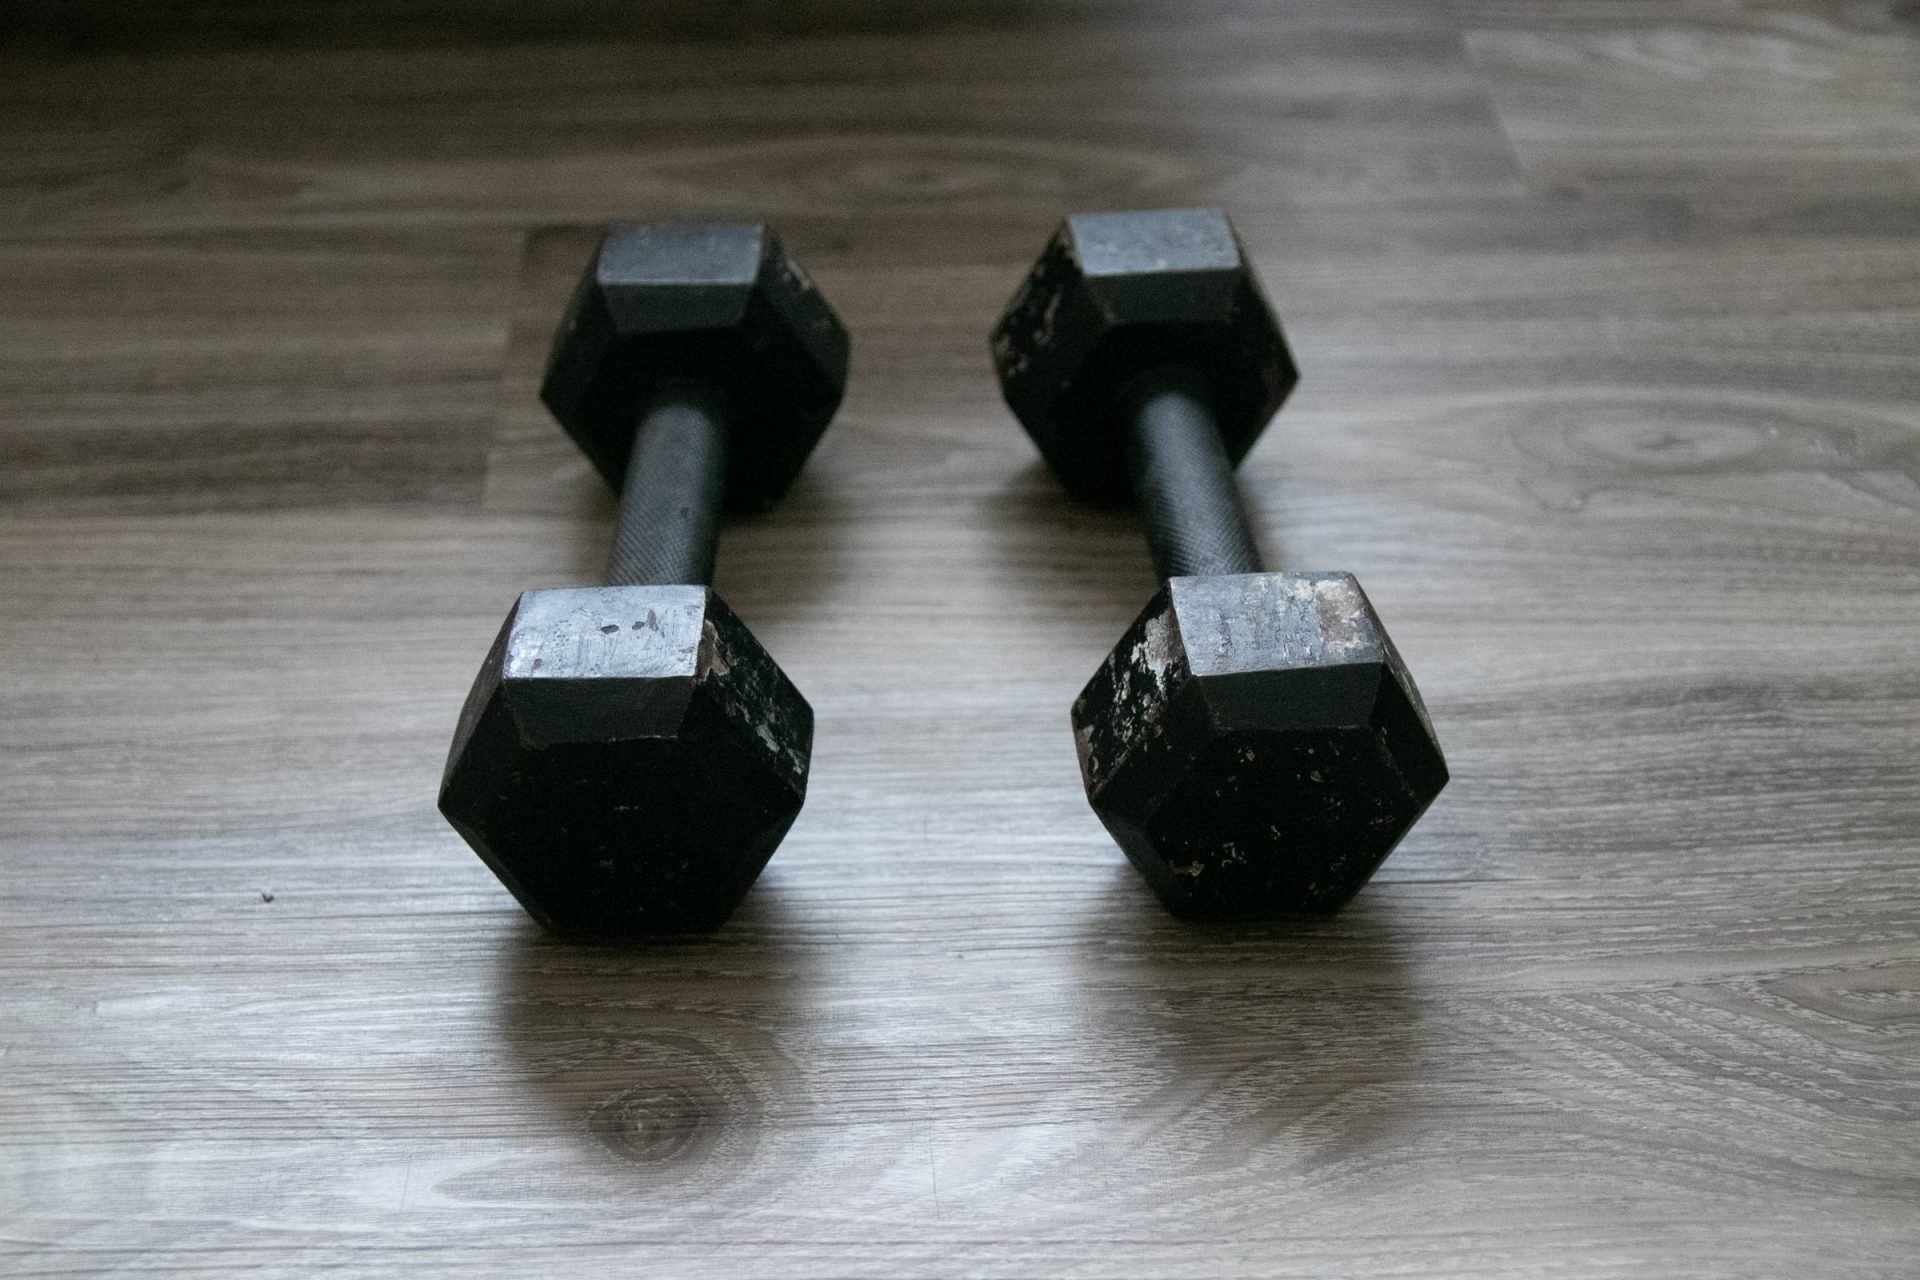 Pair Of Black Dumbbells On Wooden Surface